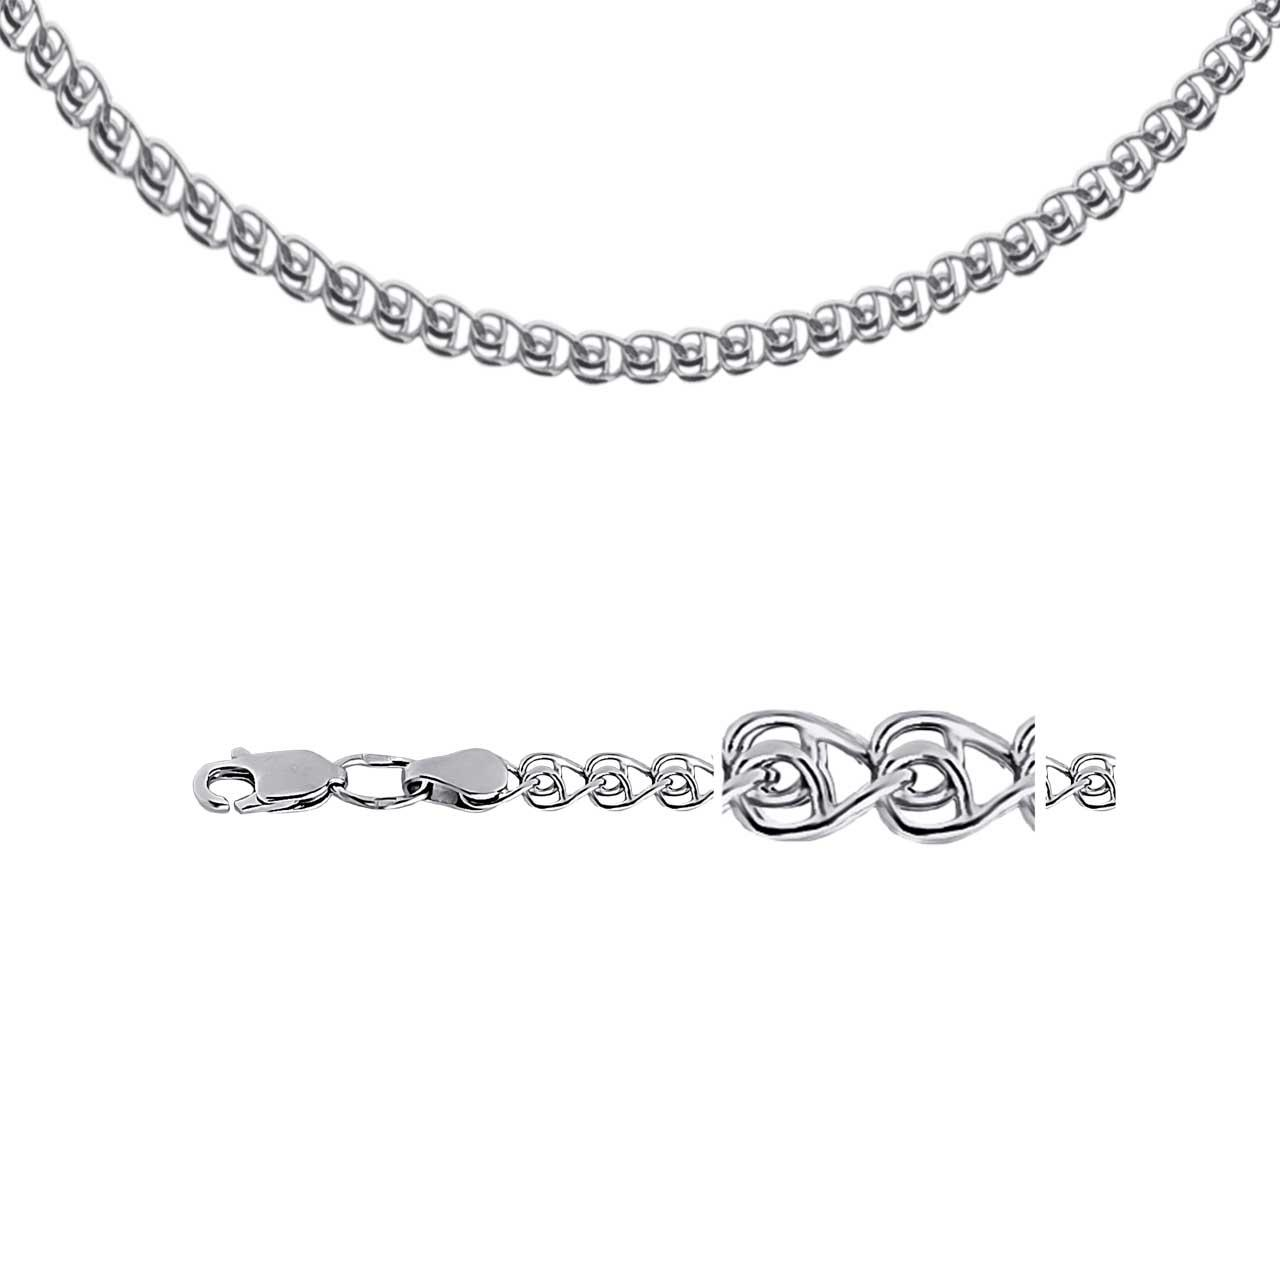 "Love-link Silver Chain 4.1 mm | 5/32"" Wide"